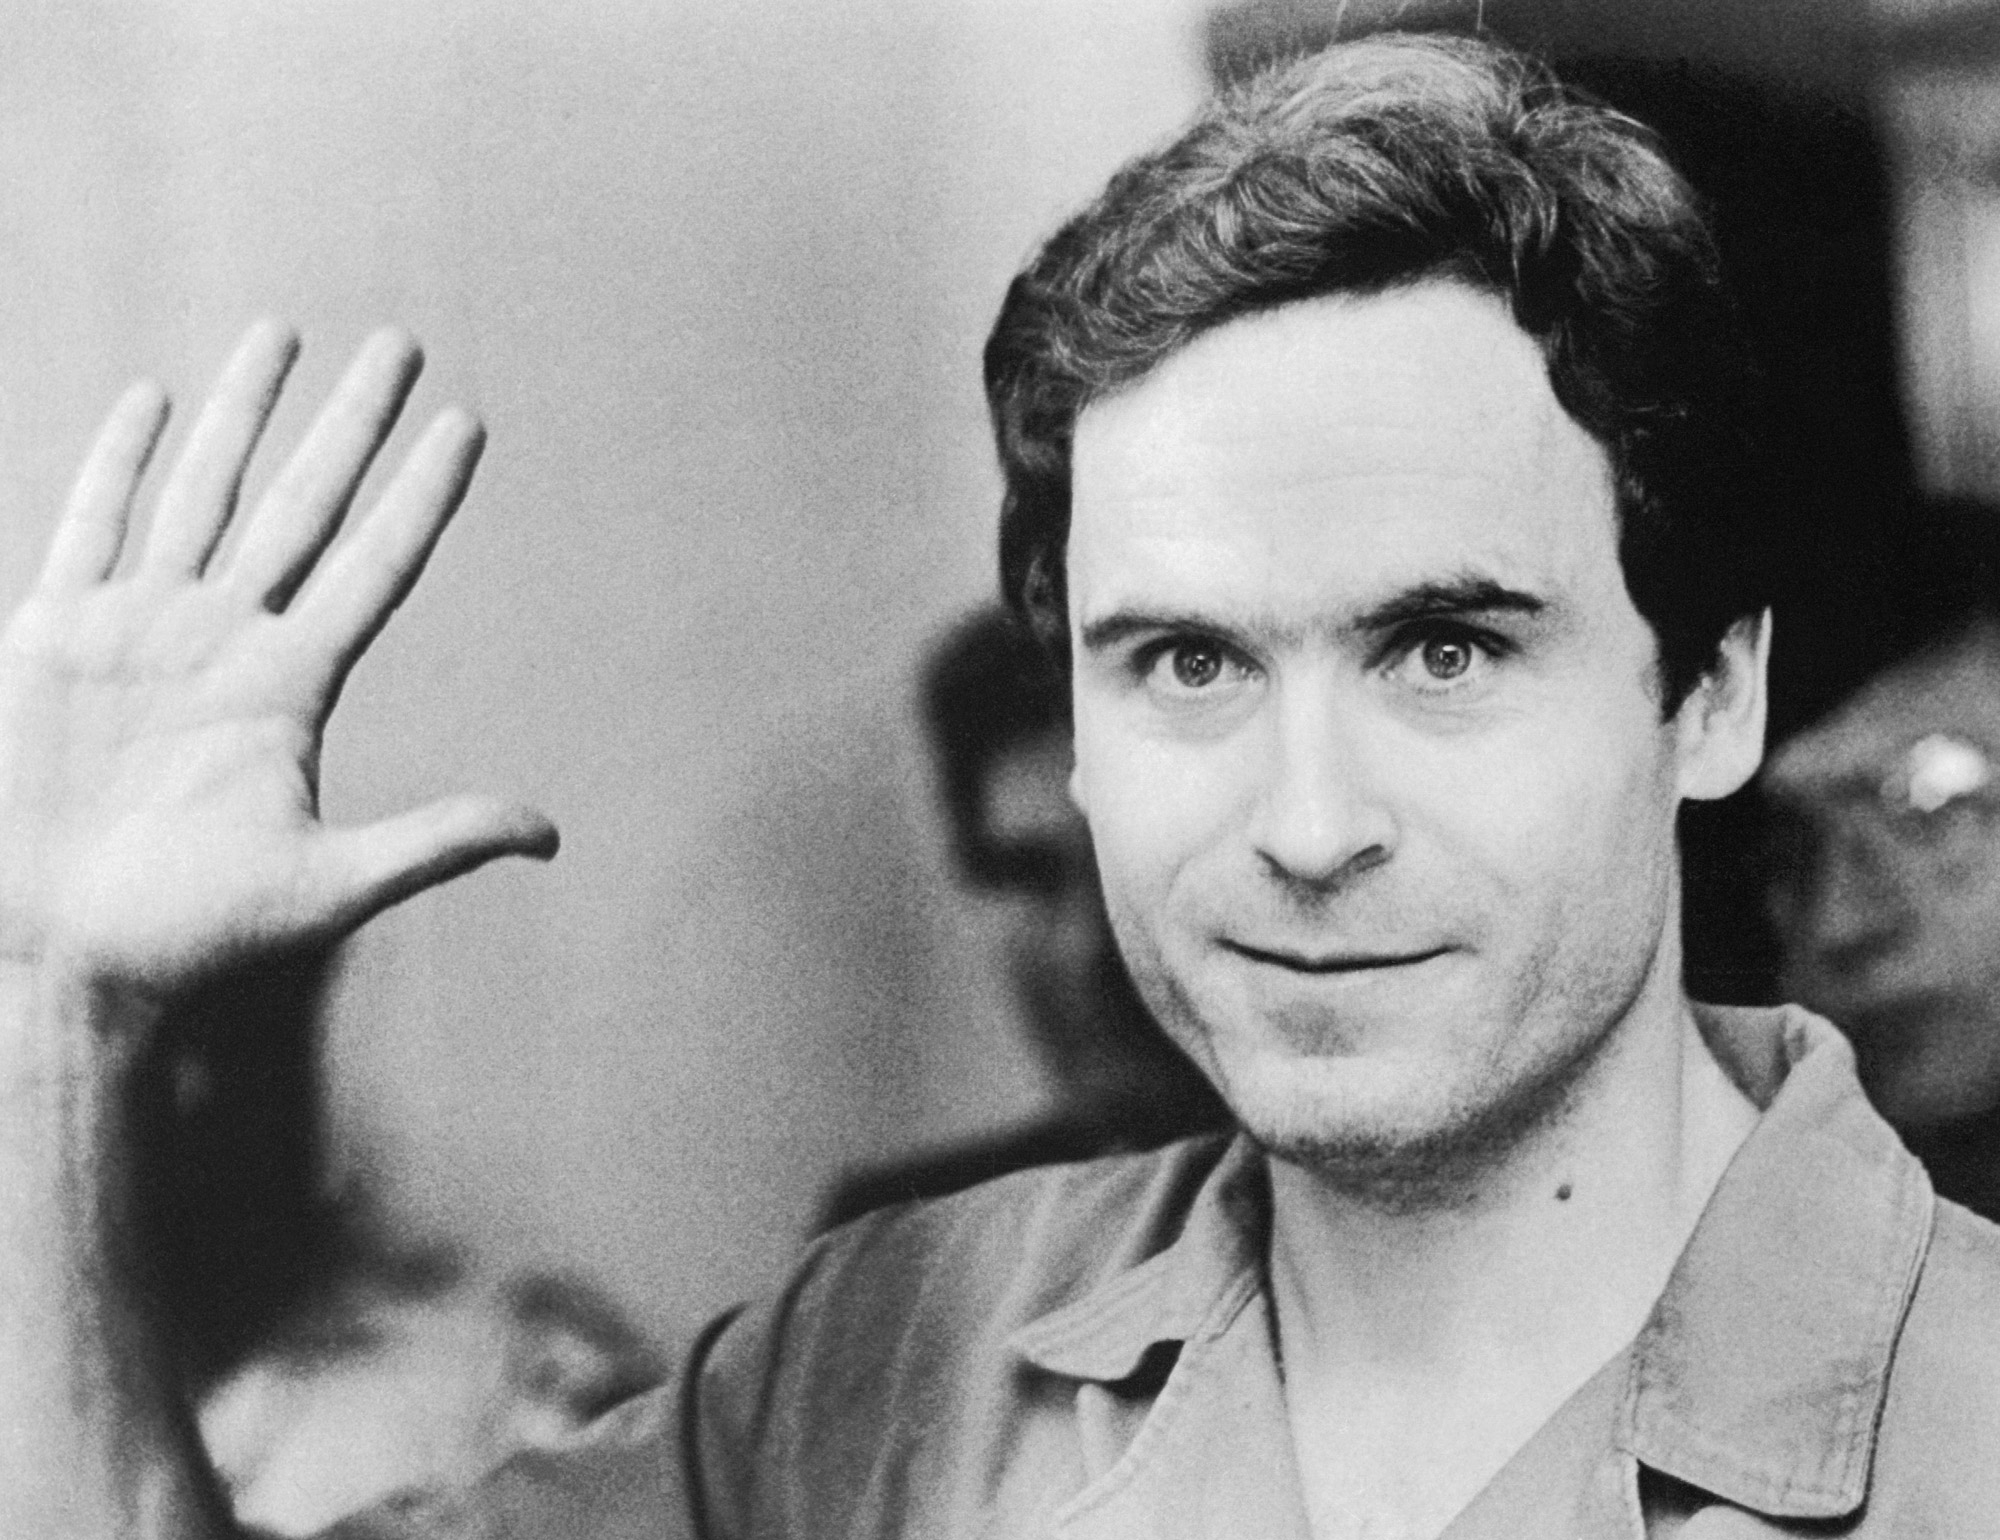 Ted bundy and pornography